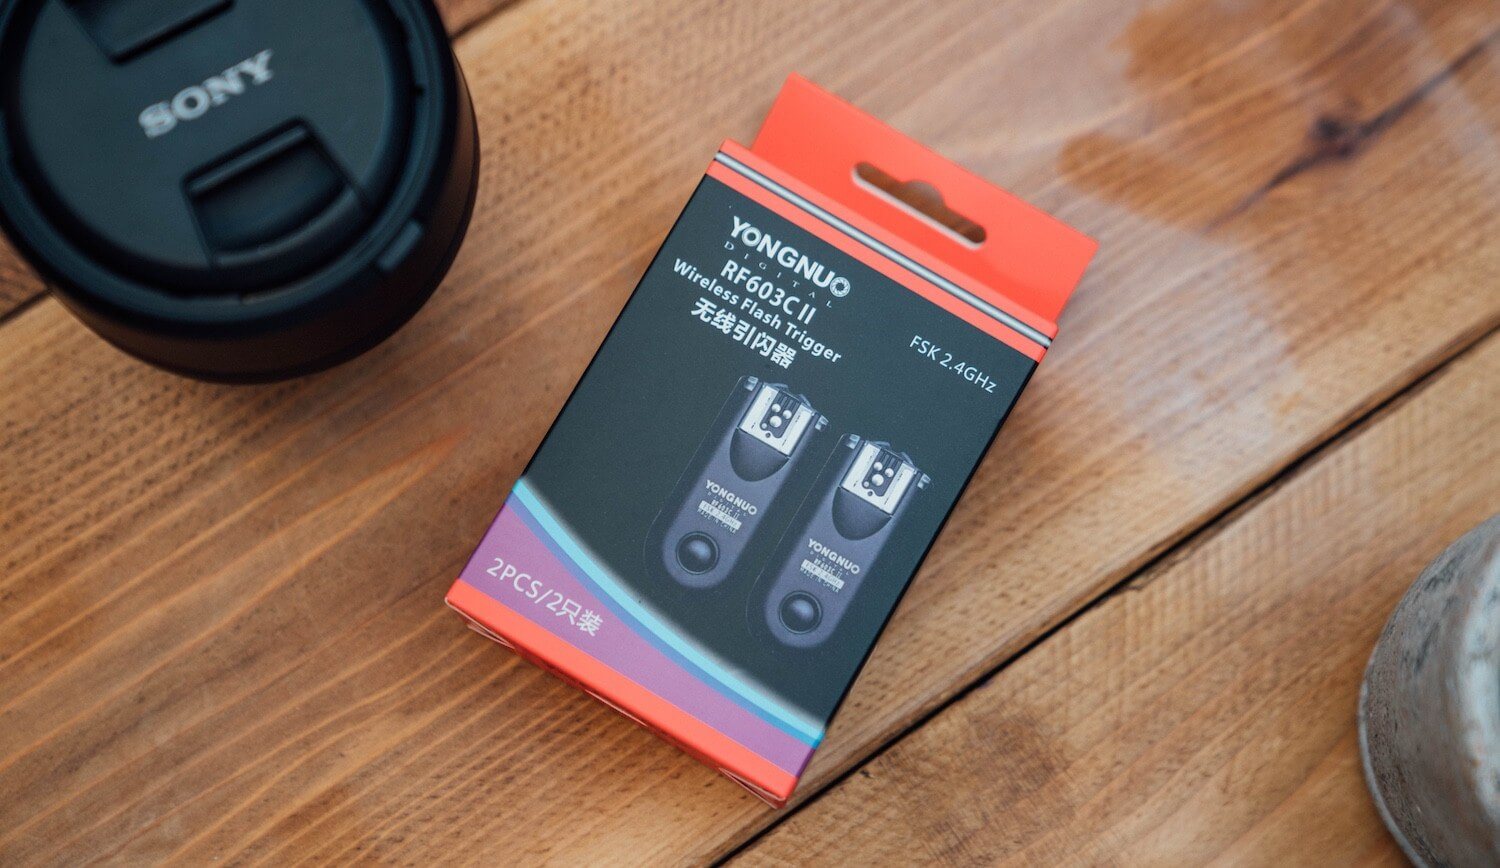 Yongnuo wireless flash triger 0001